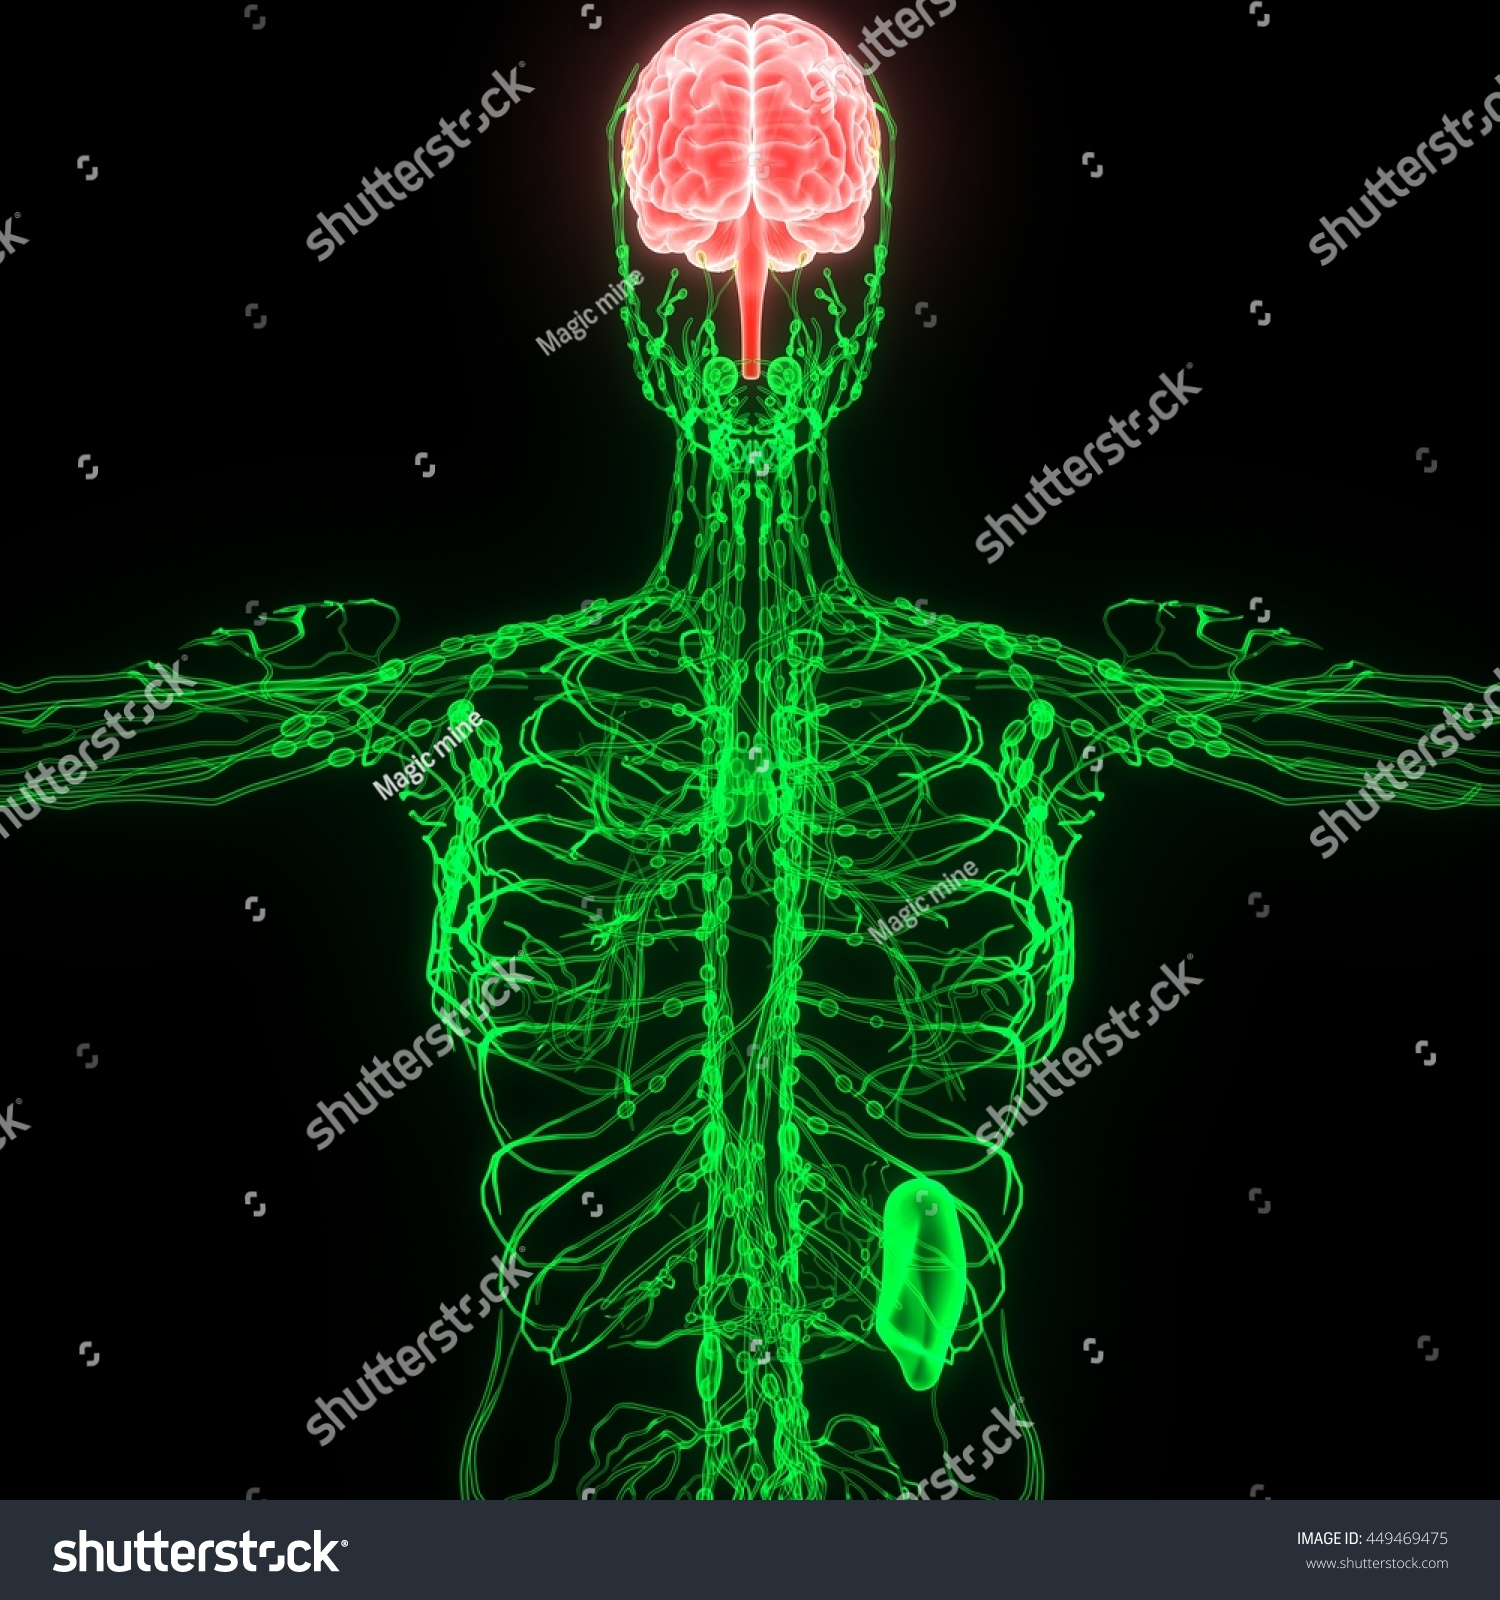 Royalty Free Stock Illustration Of Human Brain Nerves Lymph Nodes